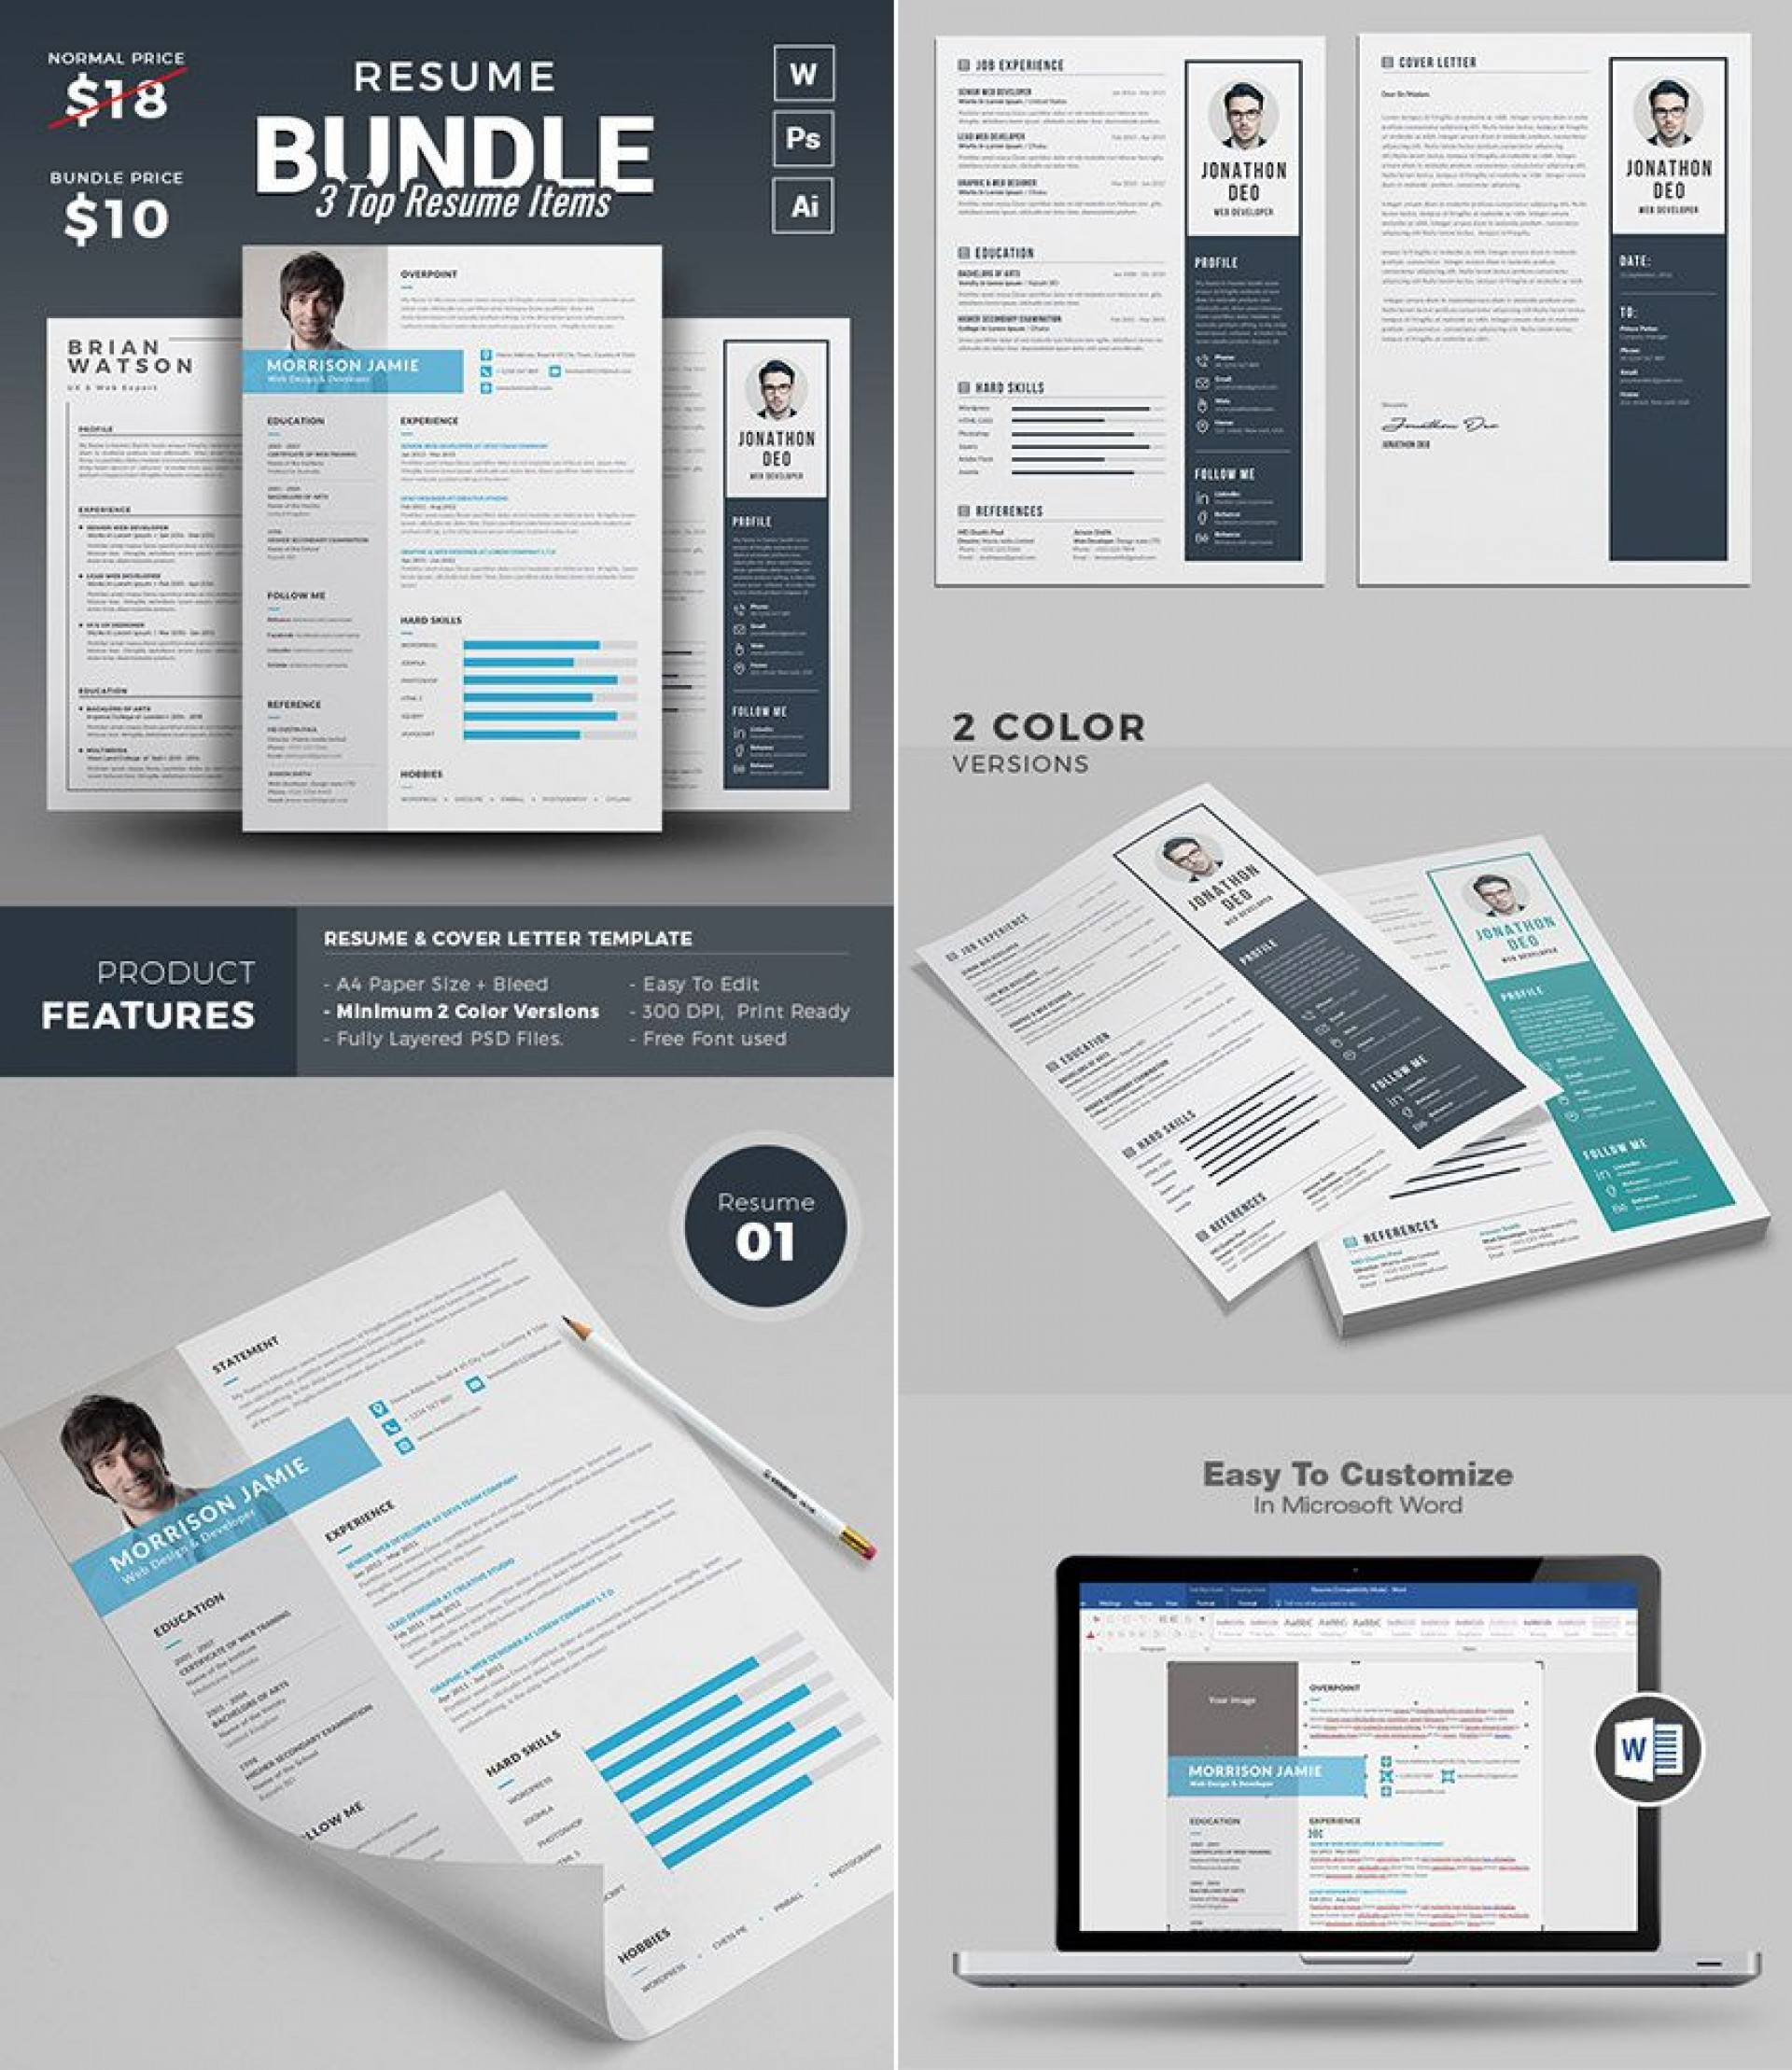 001 Astounding Microsoft Word Portfolio Template High Def  Career Professional Free Download1920